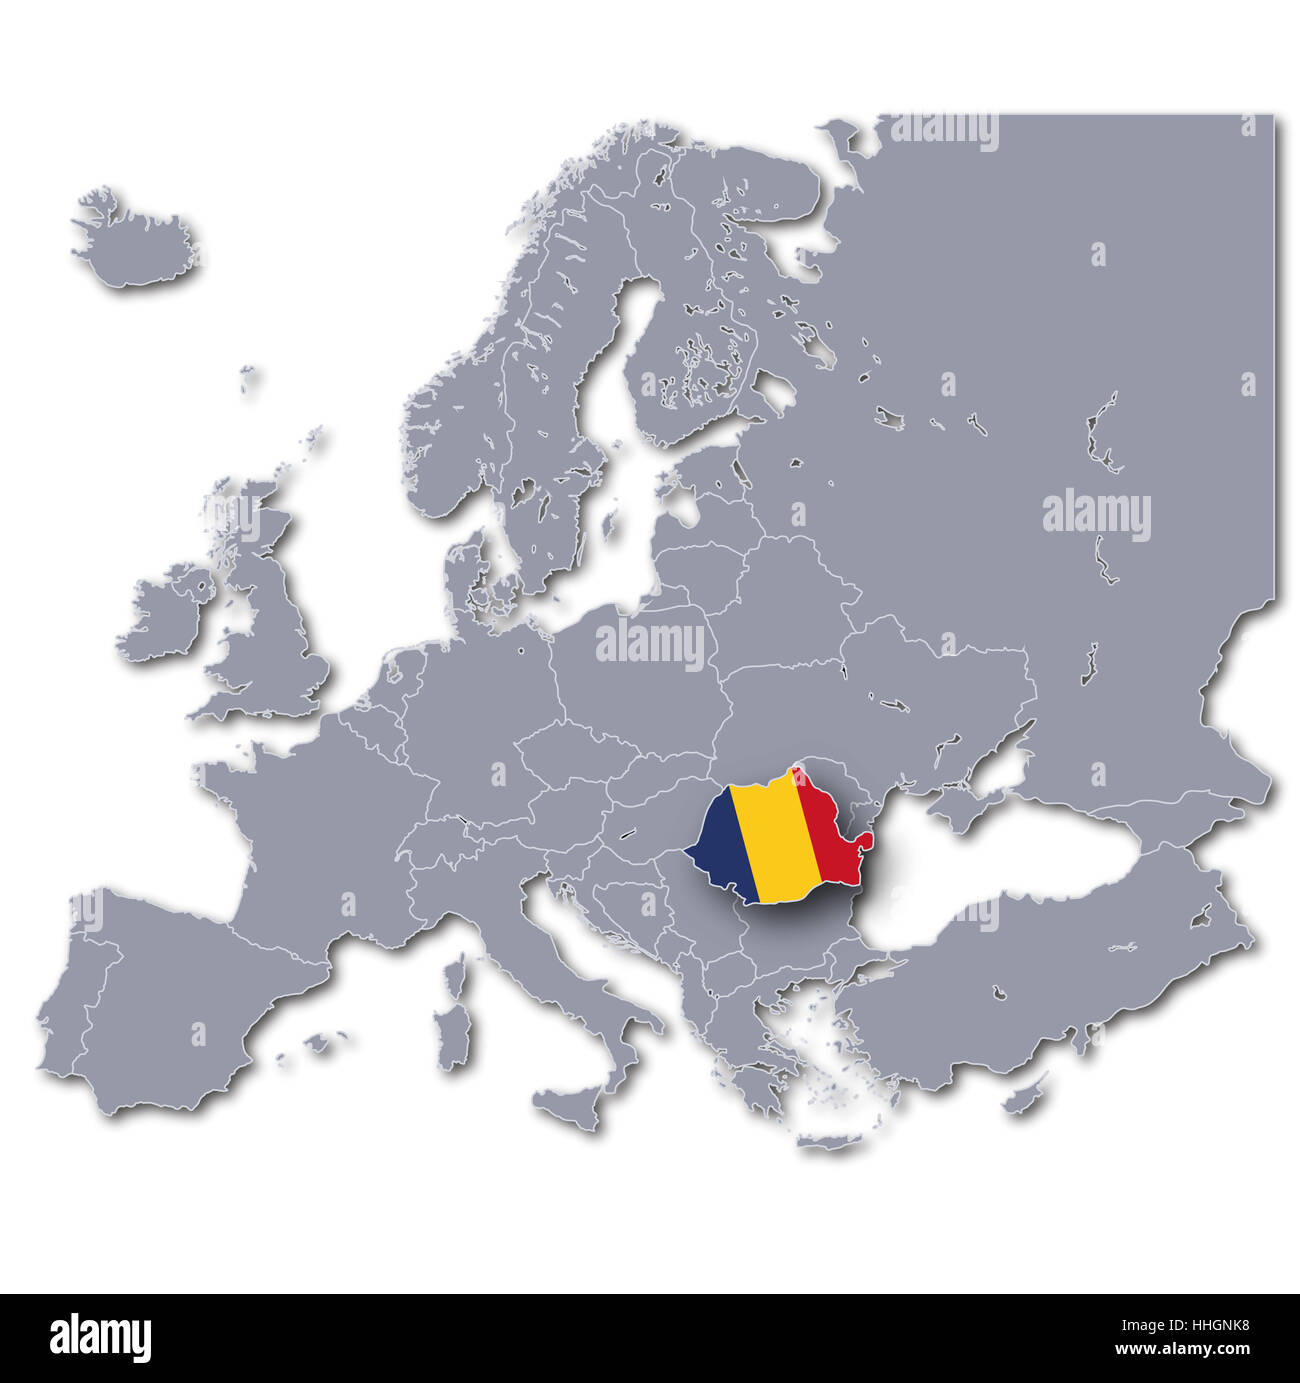 Europe map romania stock photo 131289964 alamy europe map romania gumiabroncs Image collections